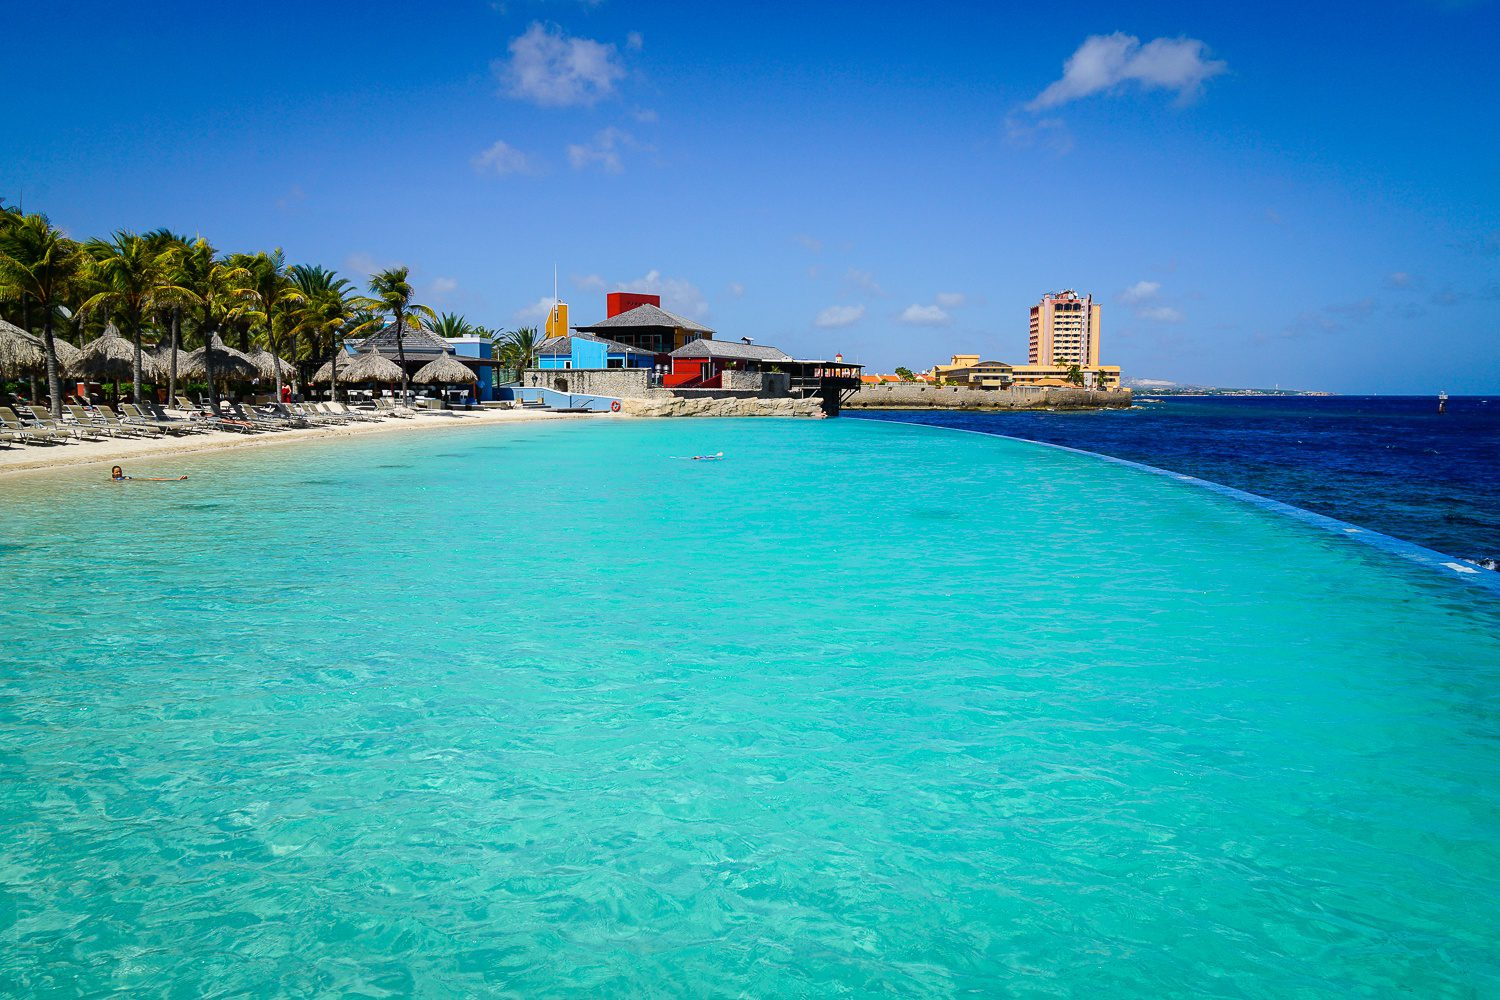 Loved this pool in Curacao!